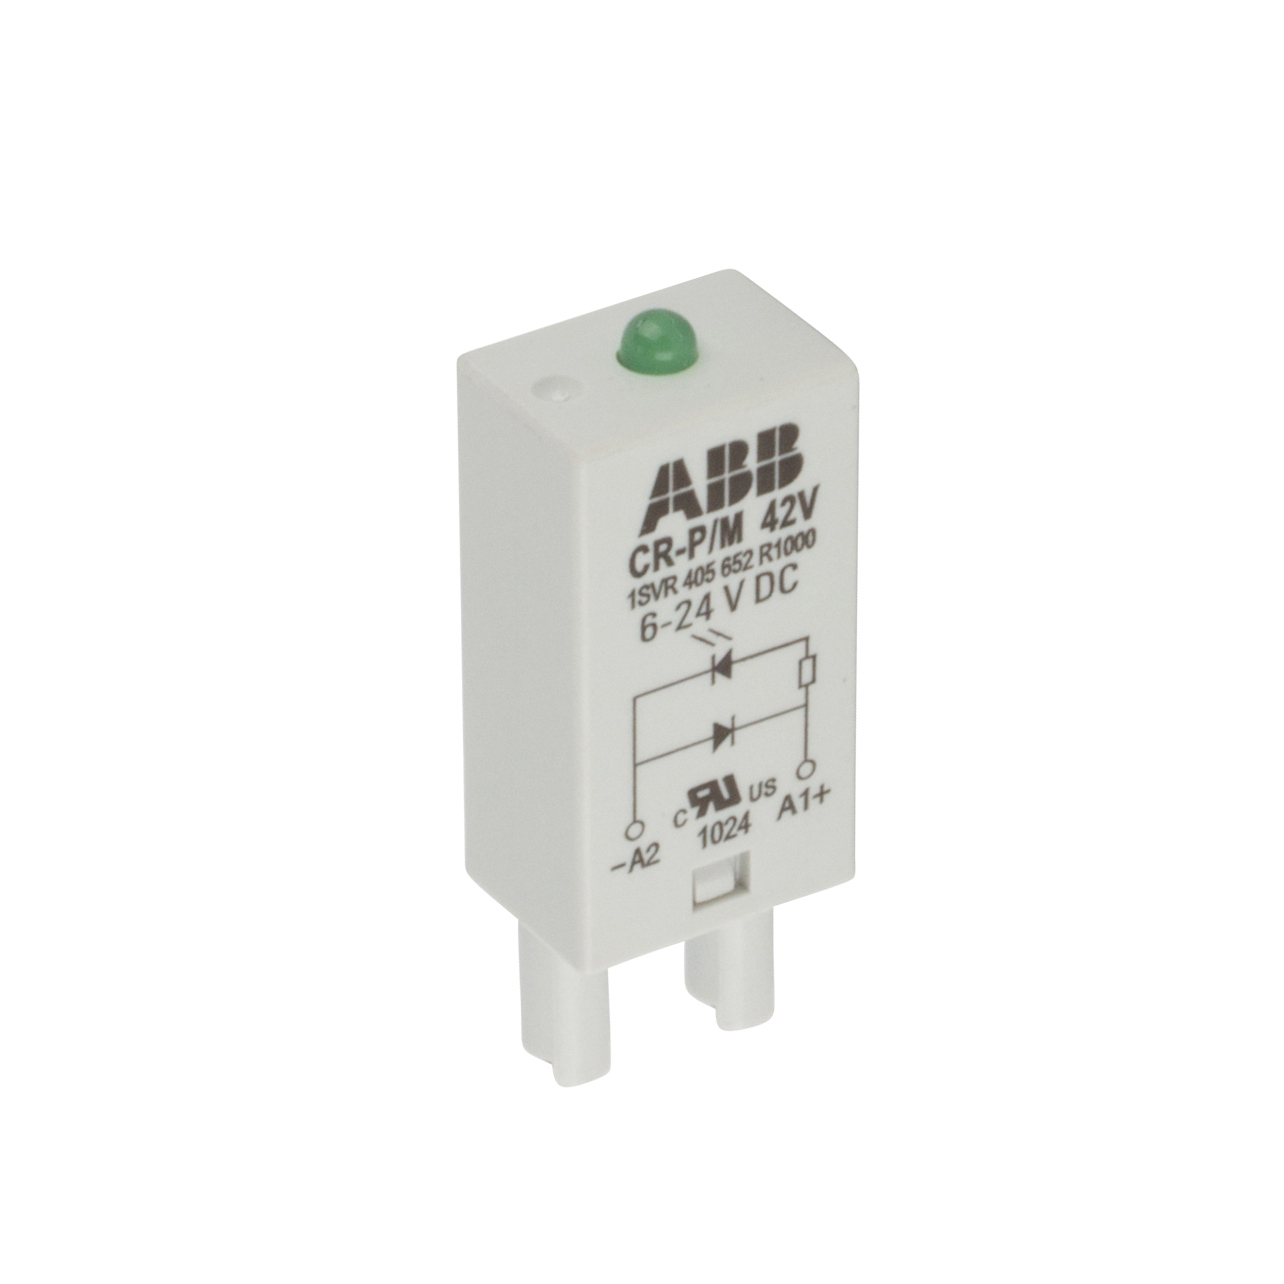 Plugin control relay with 6-24 VDC rated control supply voltage with ...